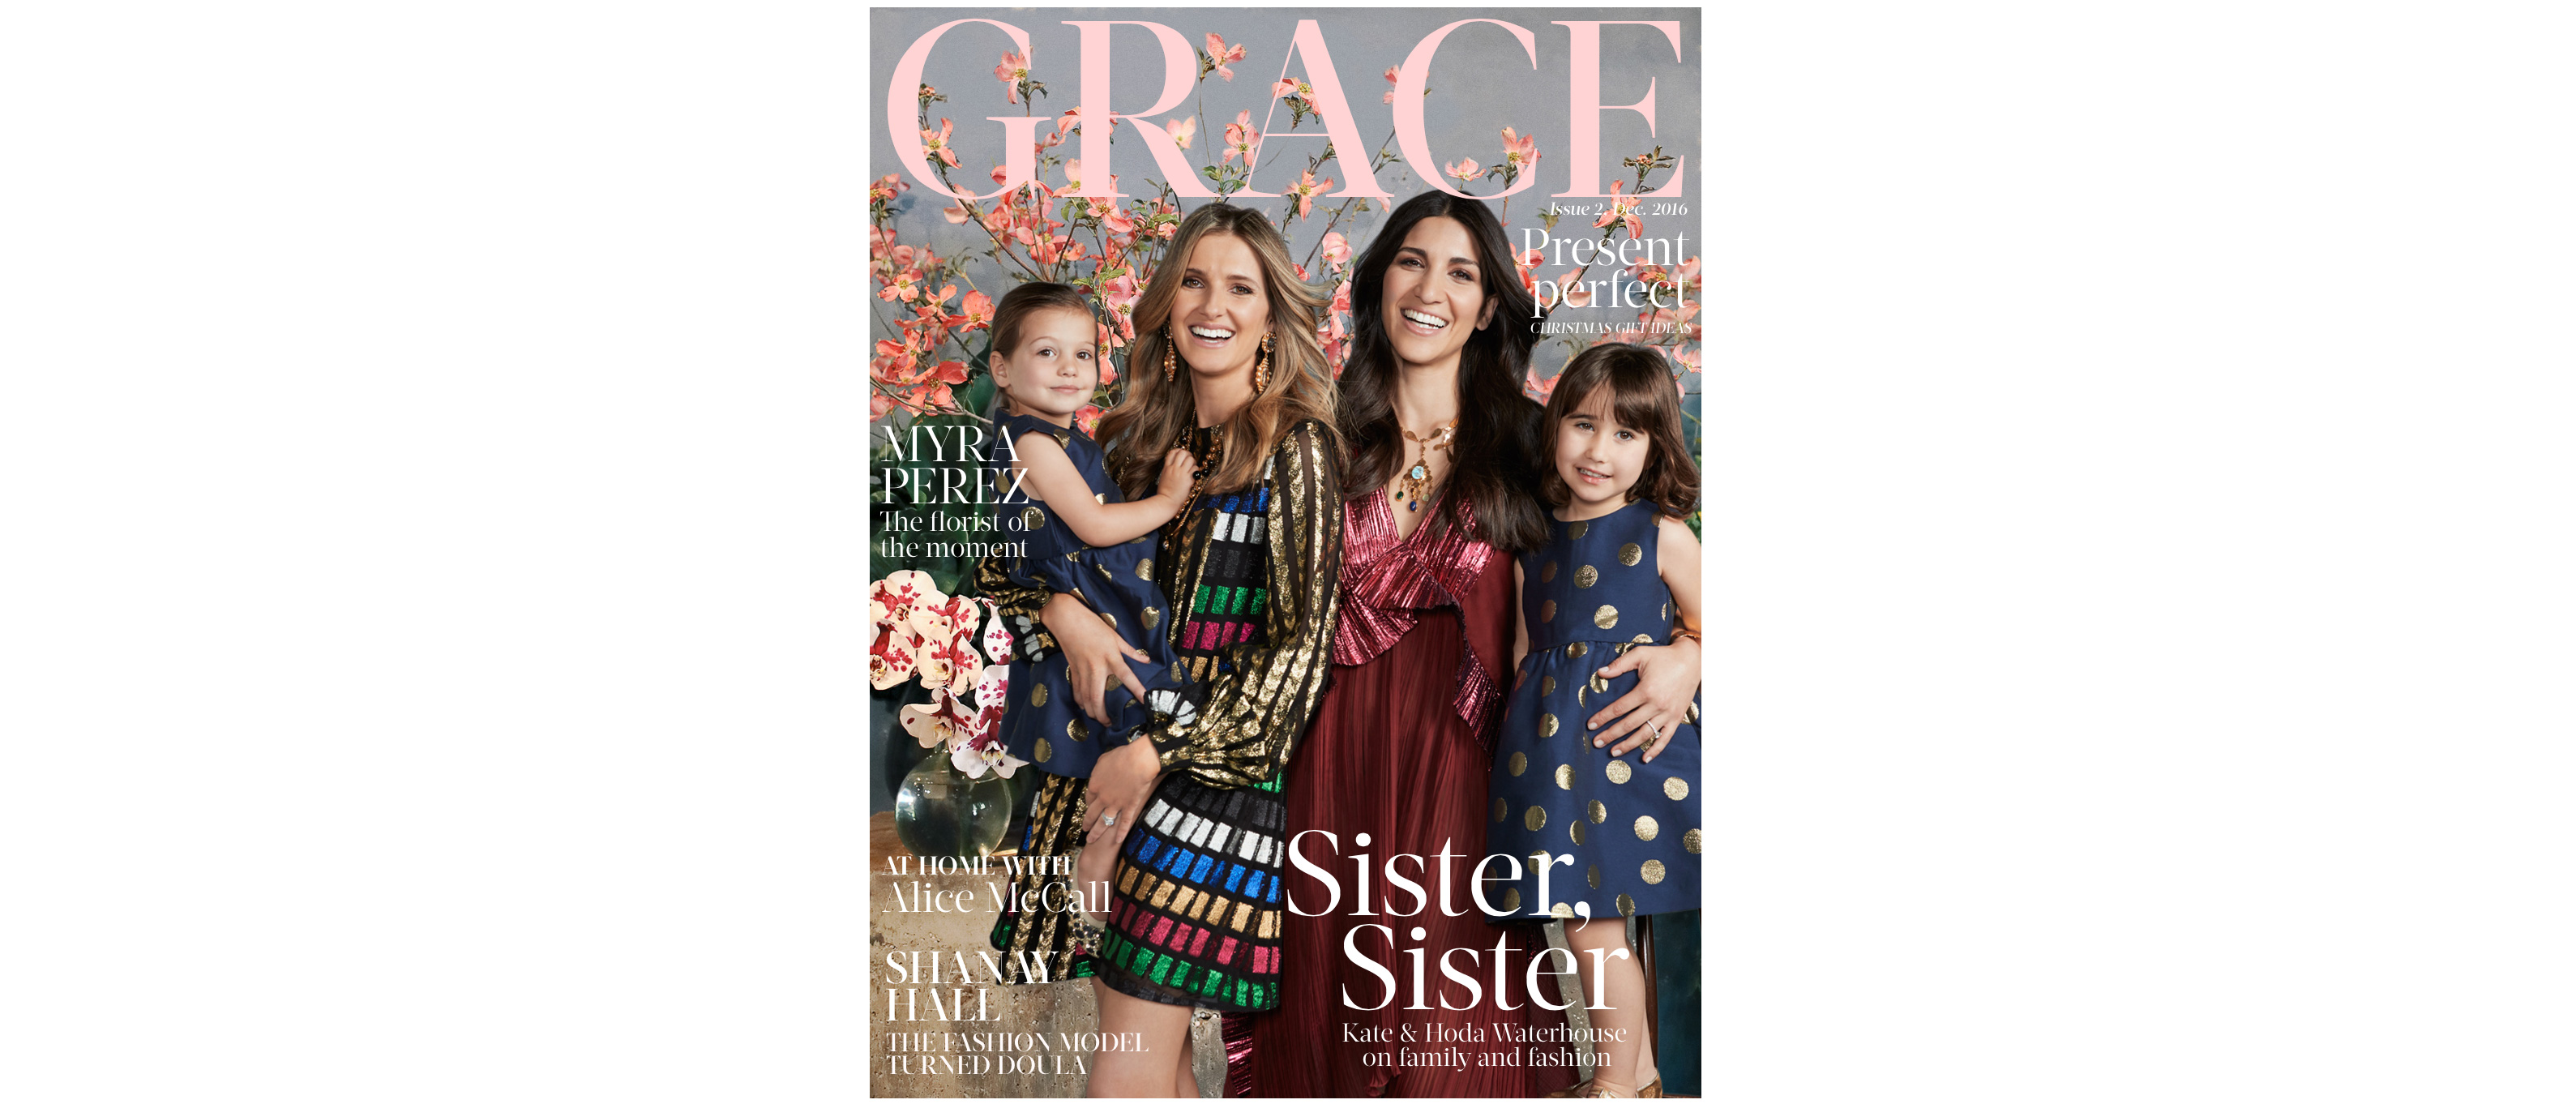 Welcome to the December issue of GRACE